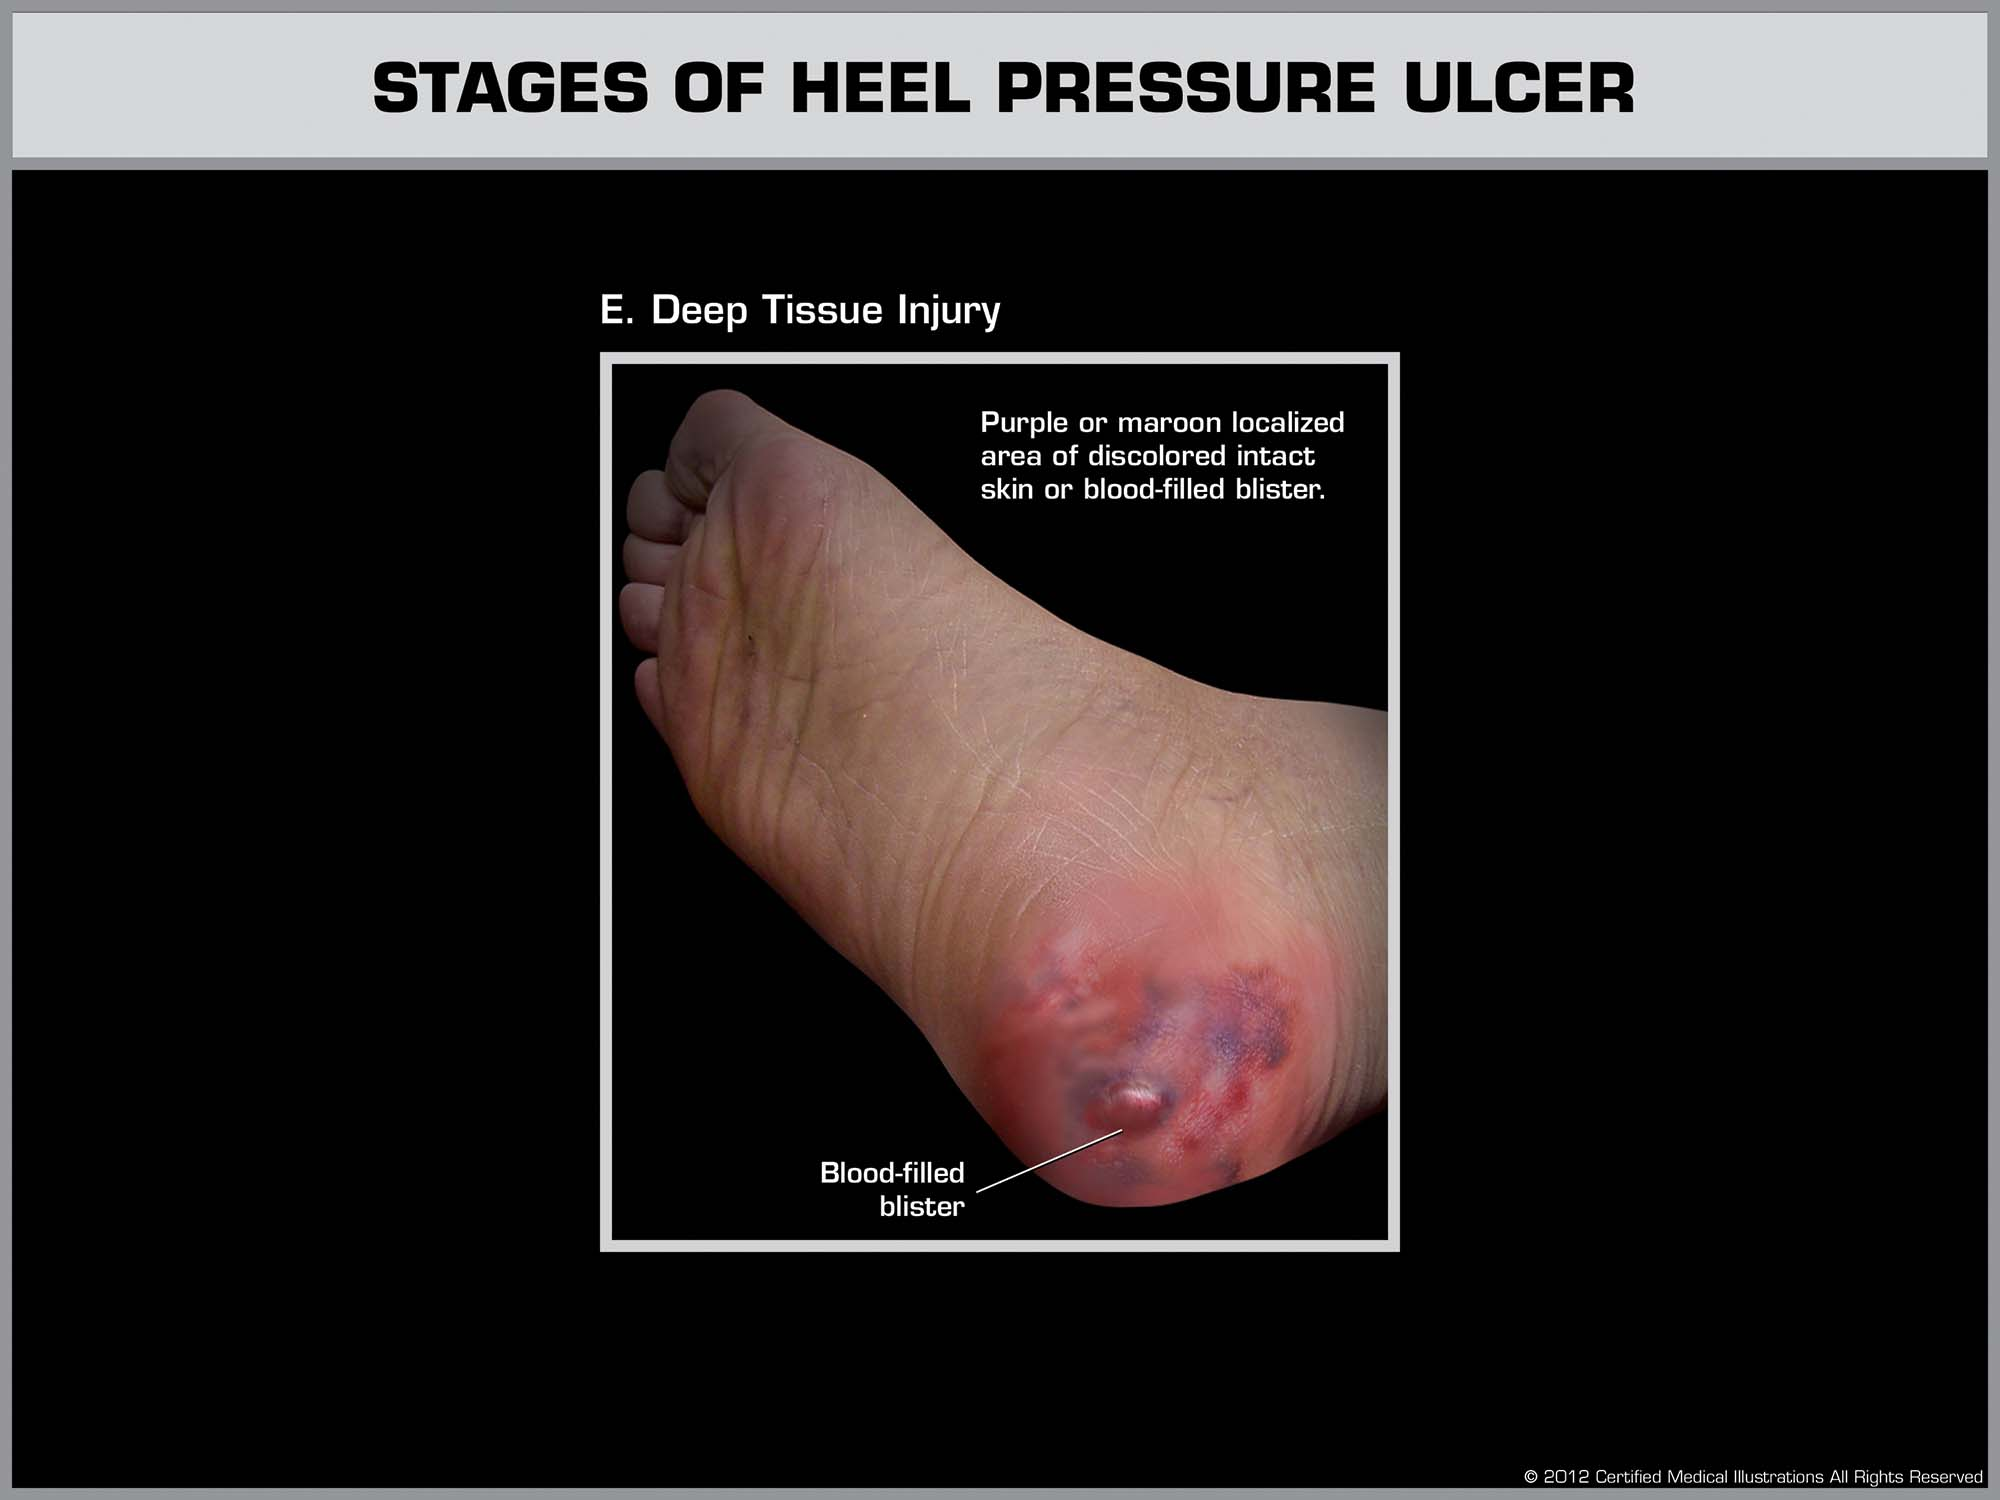 Development of a Heal Ulcer - Stage 5 - Law Office of Andrew A. Ballerini